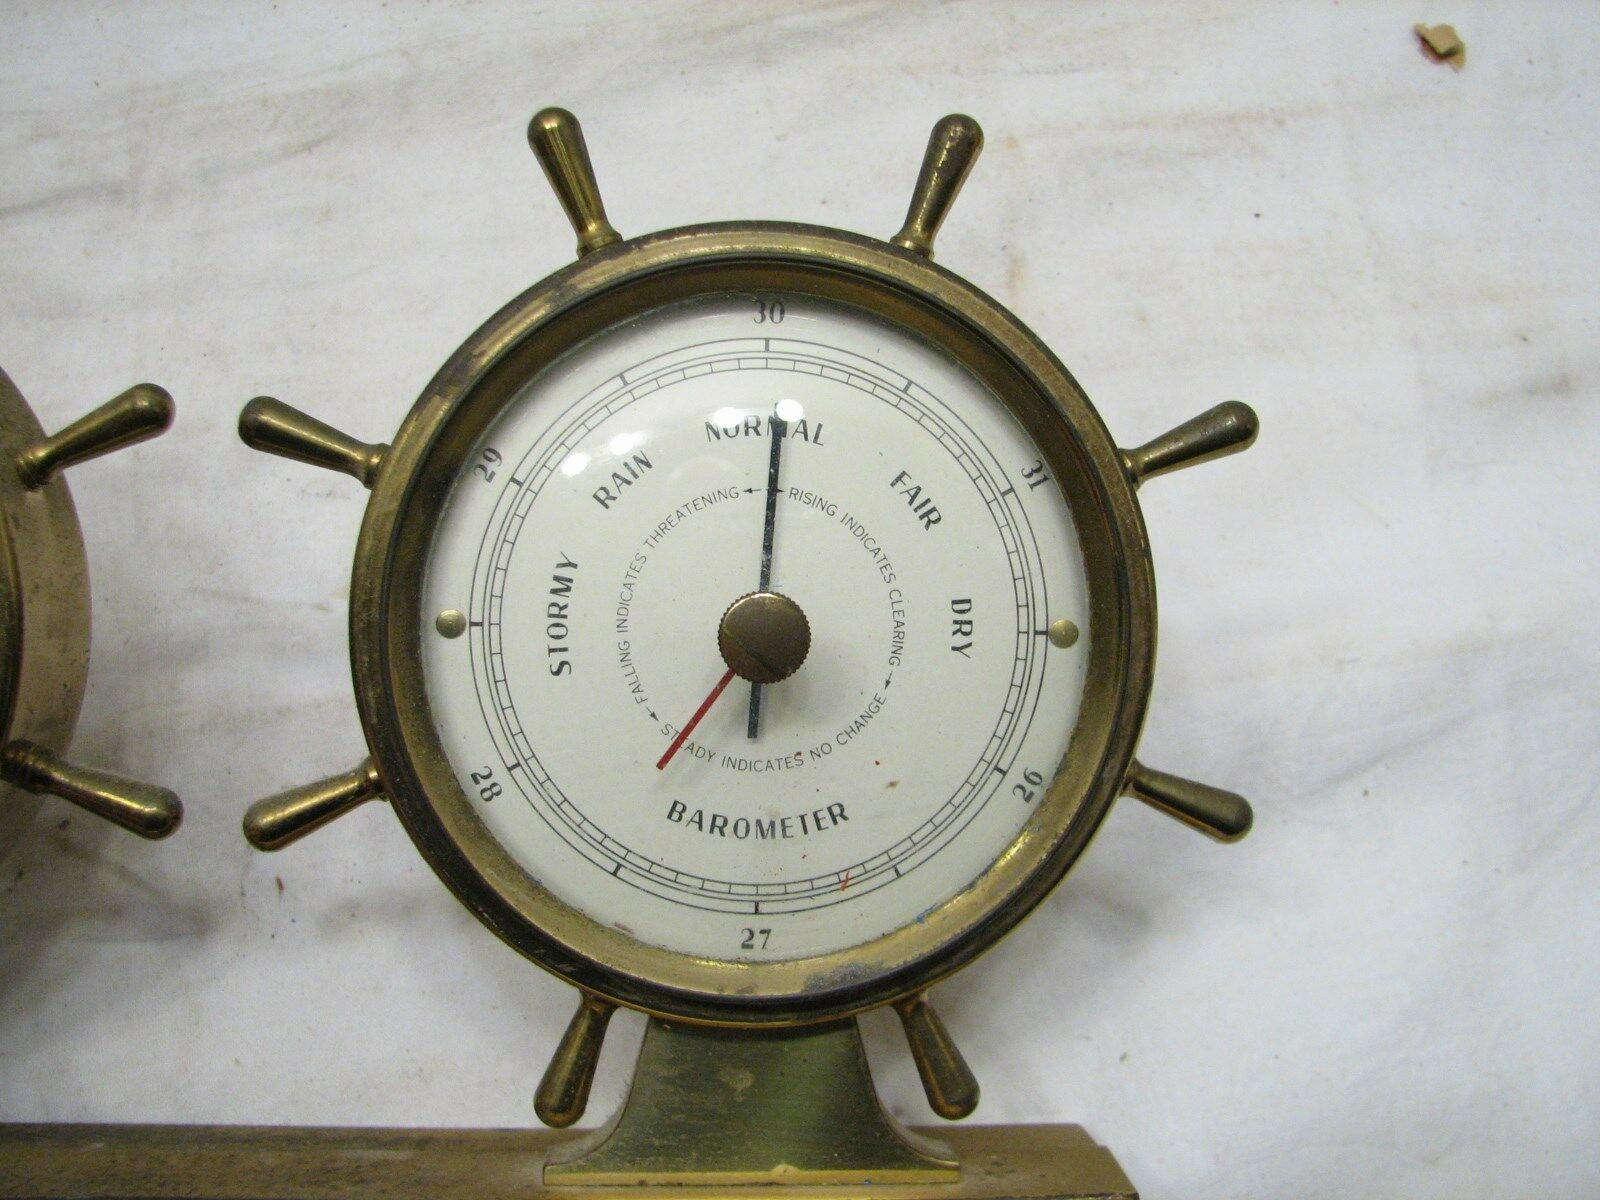 Airguide Brass Ship's Wheel Nautical Weather Station Thermometer Thermometer Thermometer Barometer Deco 123aef